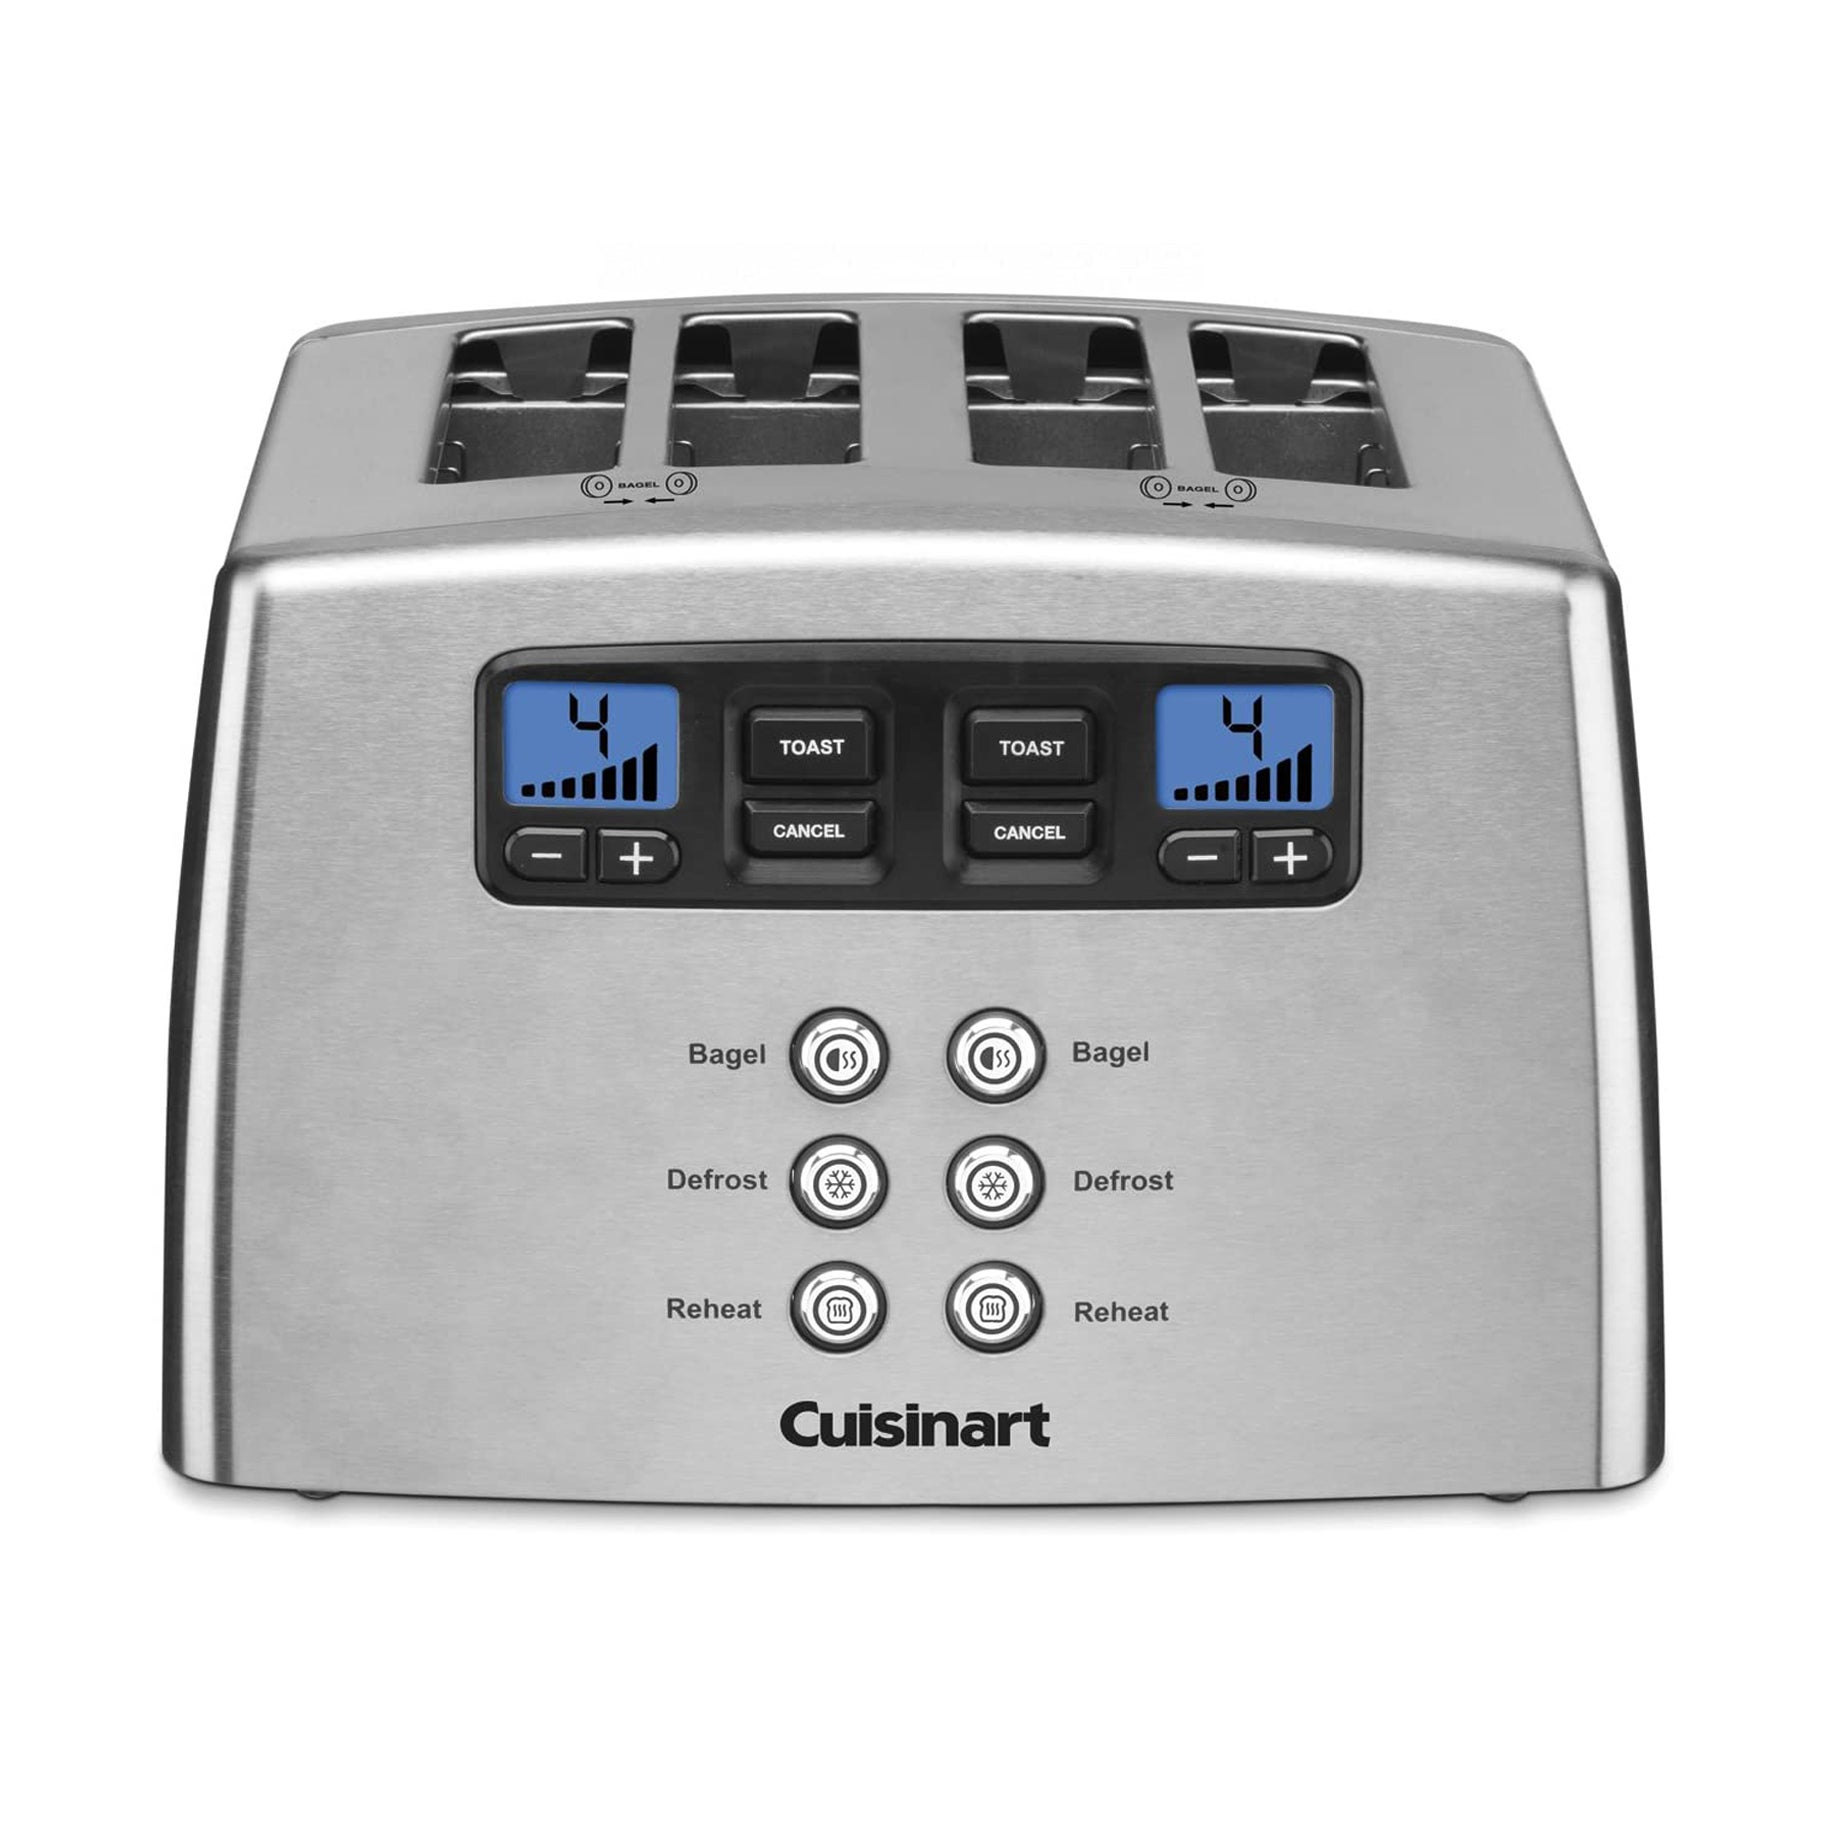 The Best Four Slice Toasters Option: Cuisinart Touch to Toast Leverless Toaster